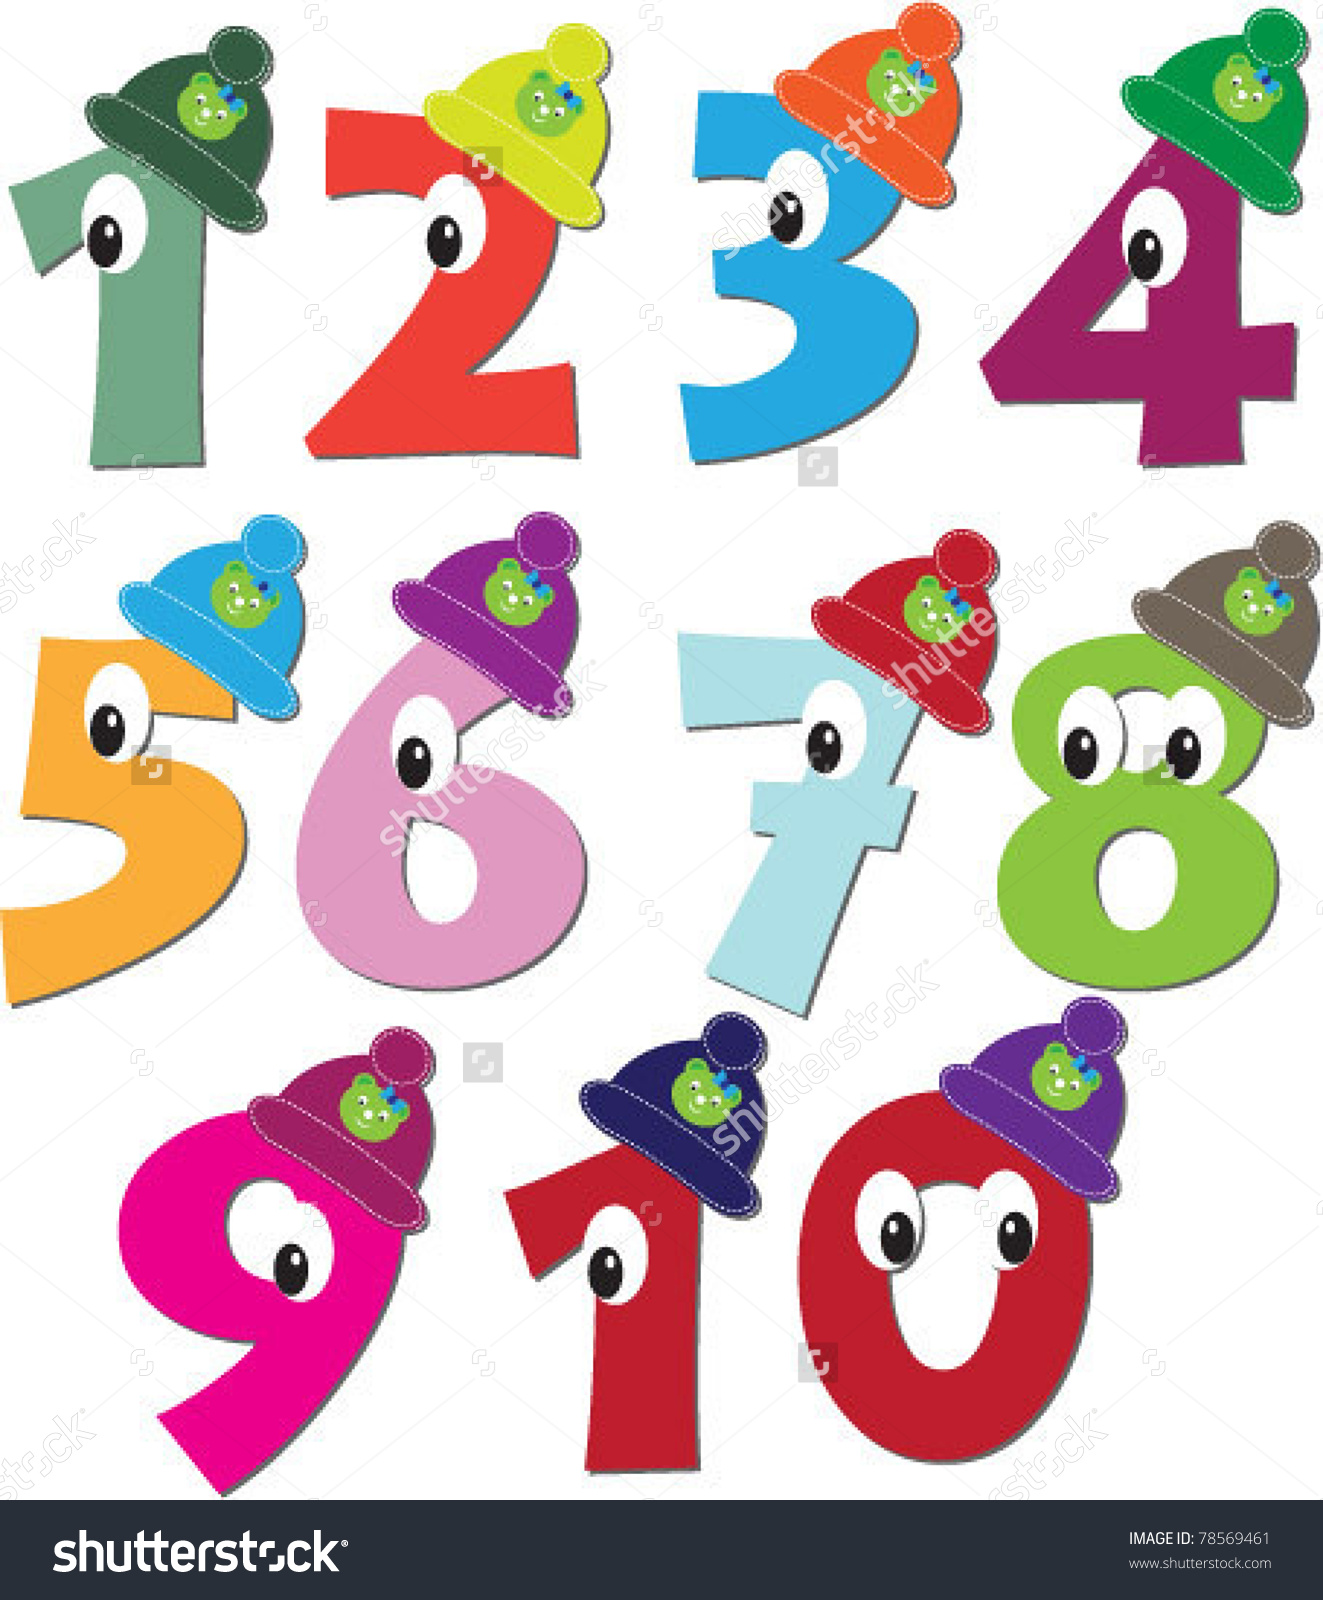 clipart of numbers 1 10 #18